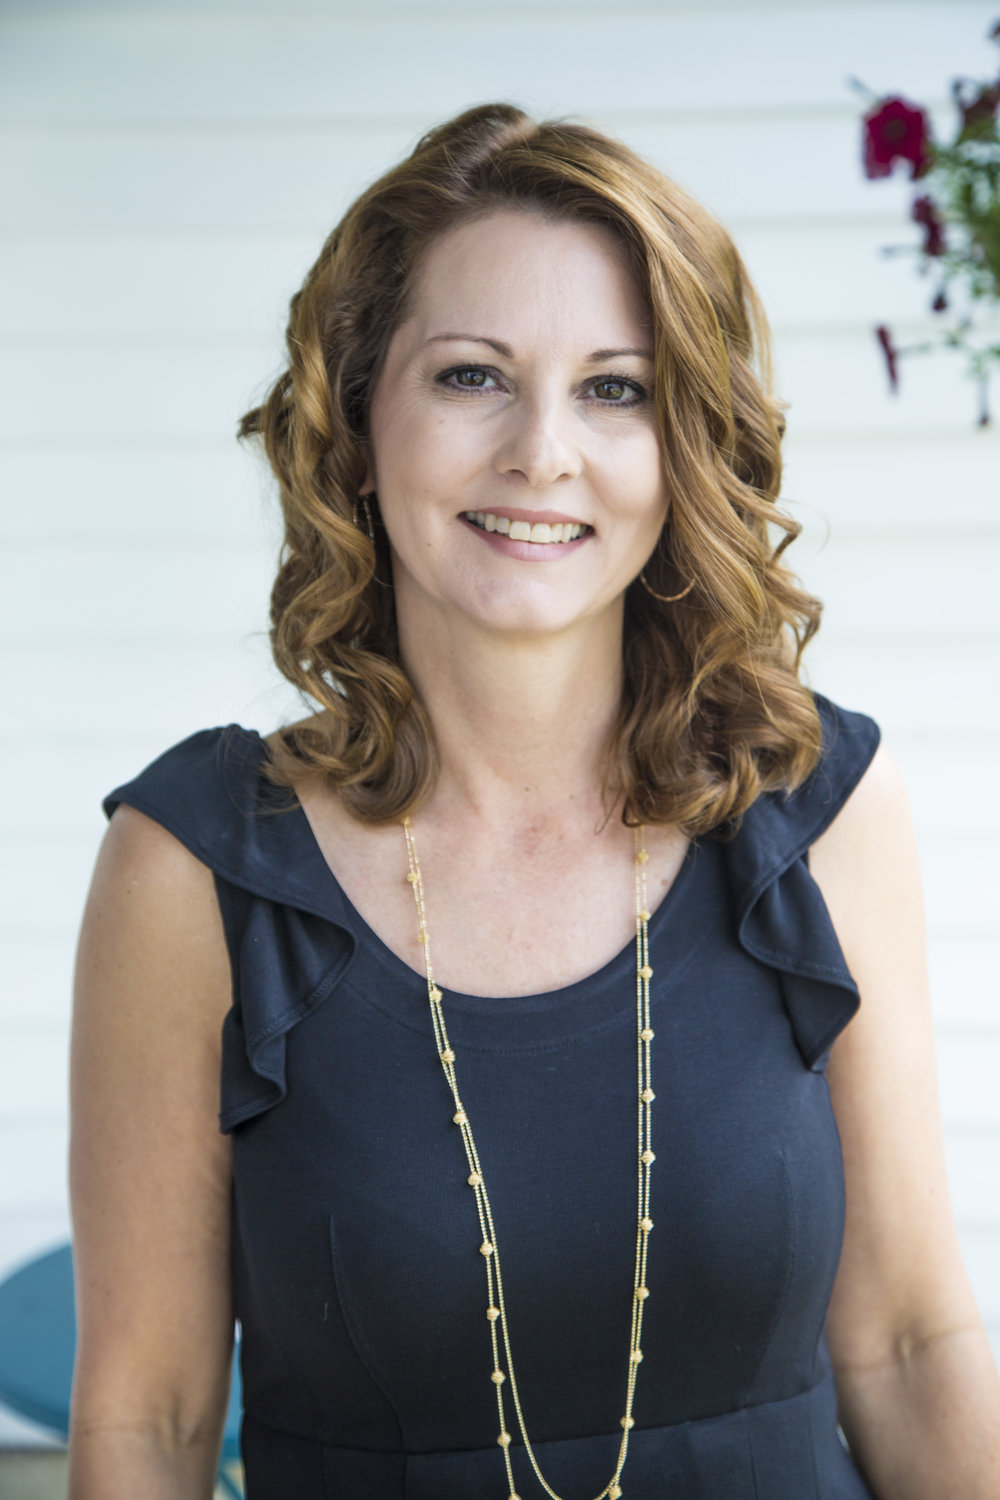 Kim Fox, Owner of Thee Draper Village Wedding and Events Company